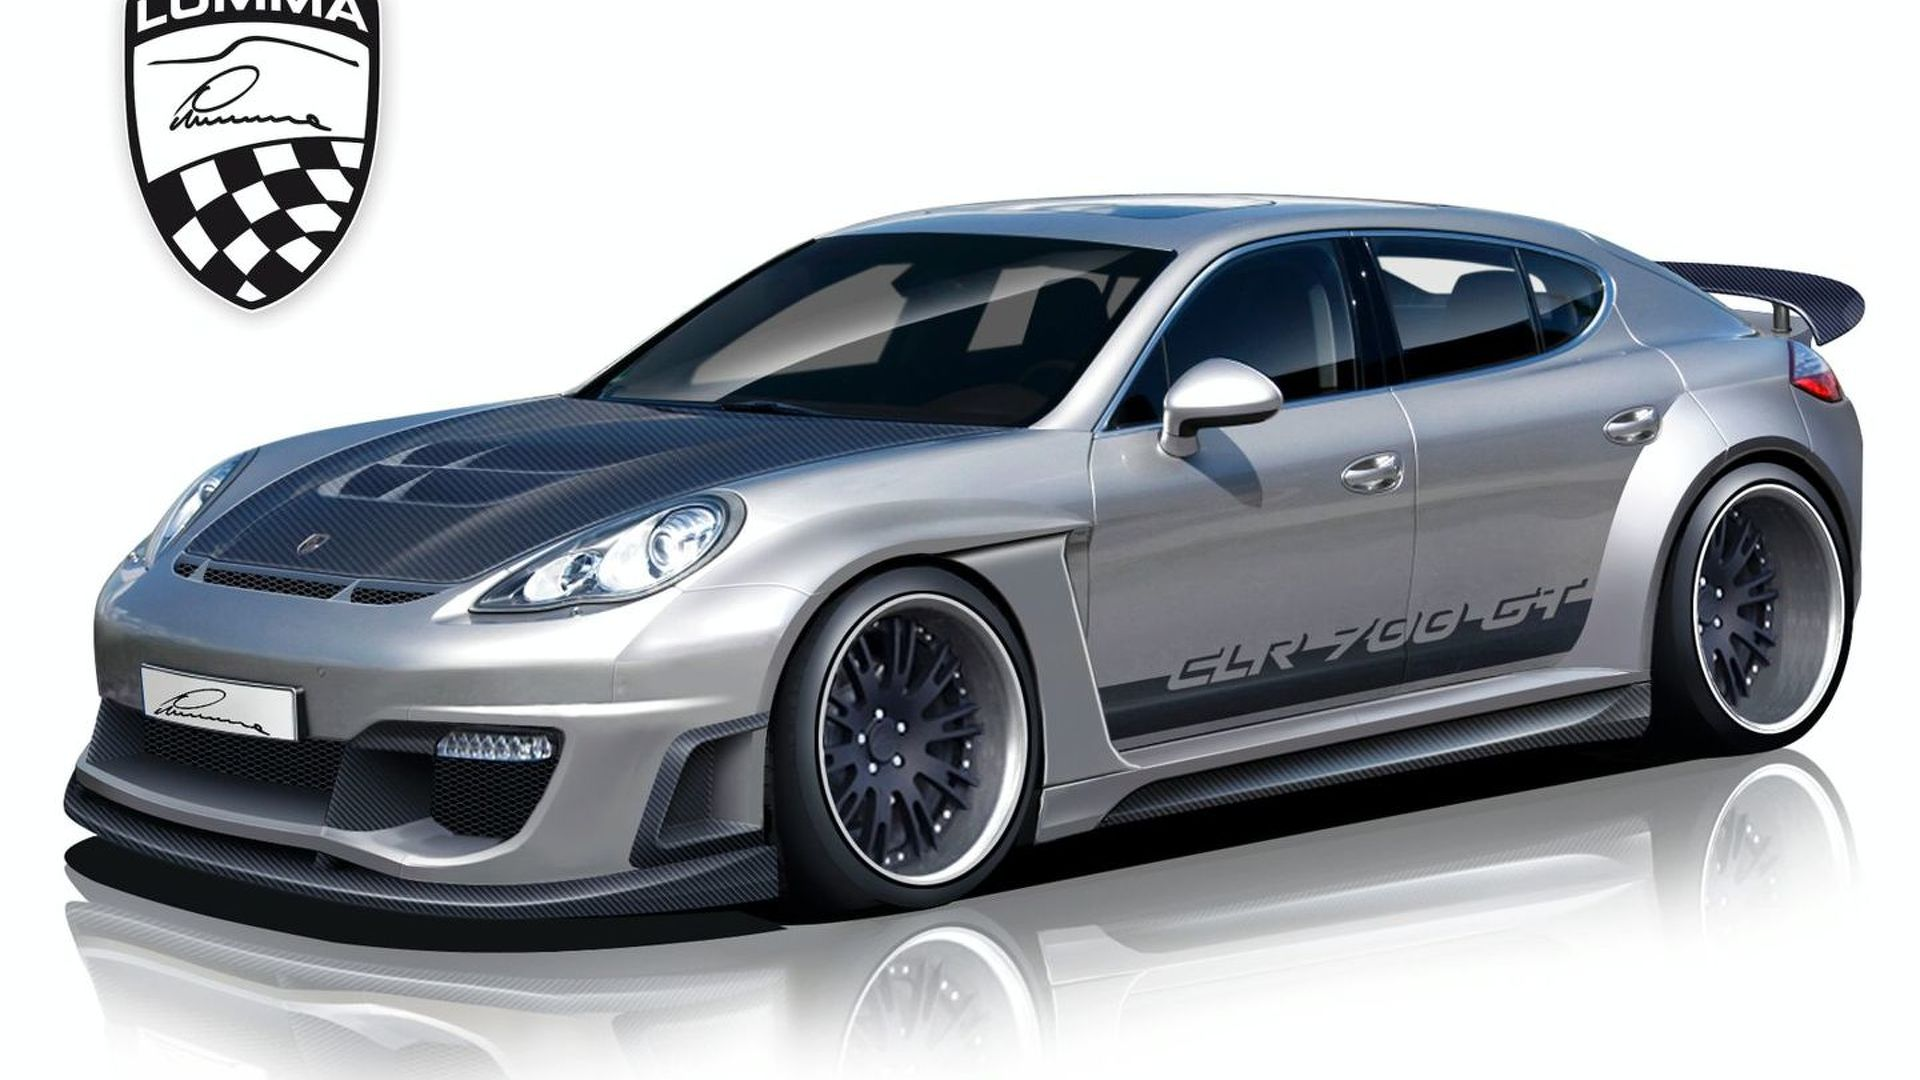 Lumma Design Panamera CLR 700GT Design Sketches Surface